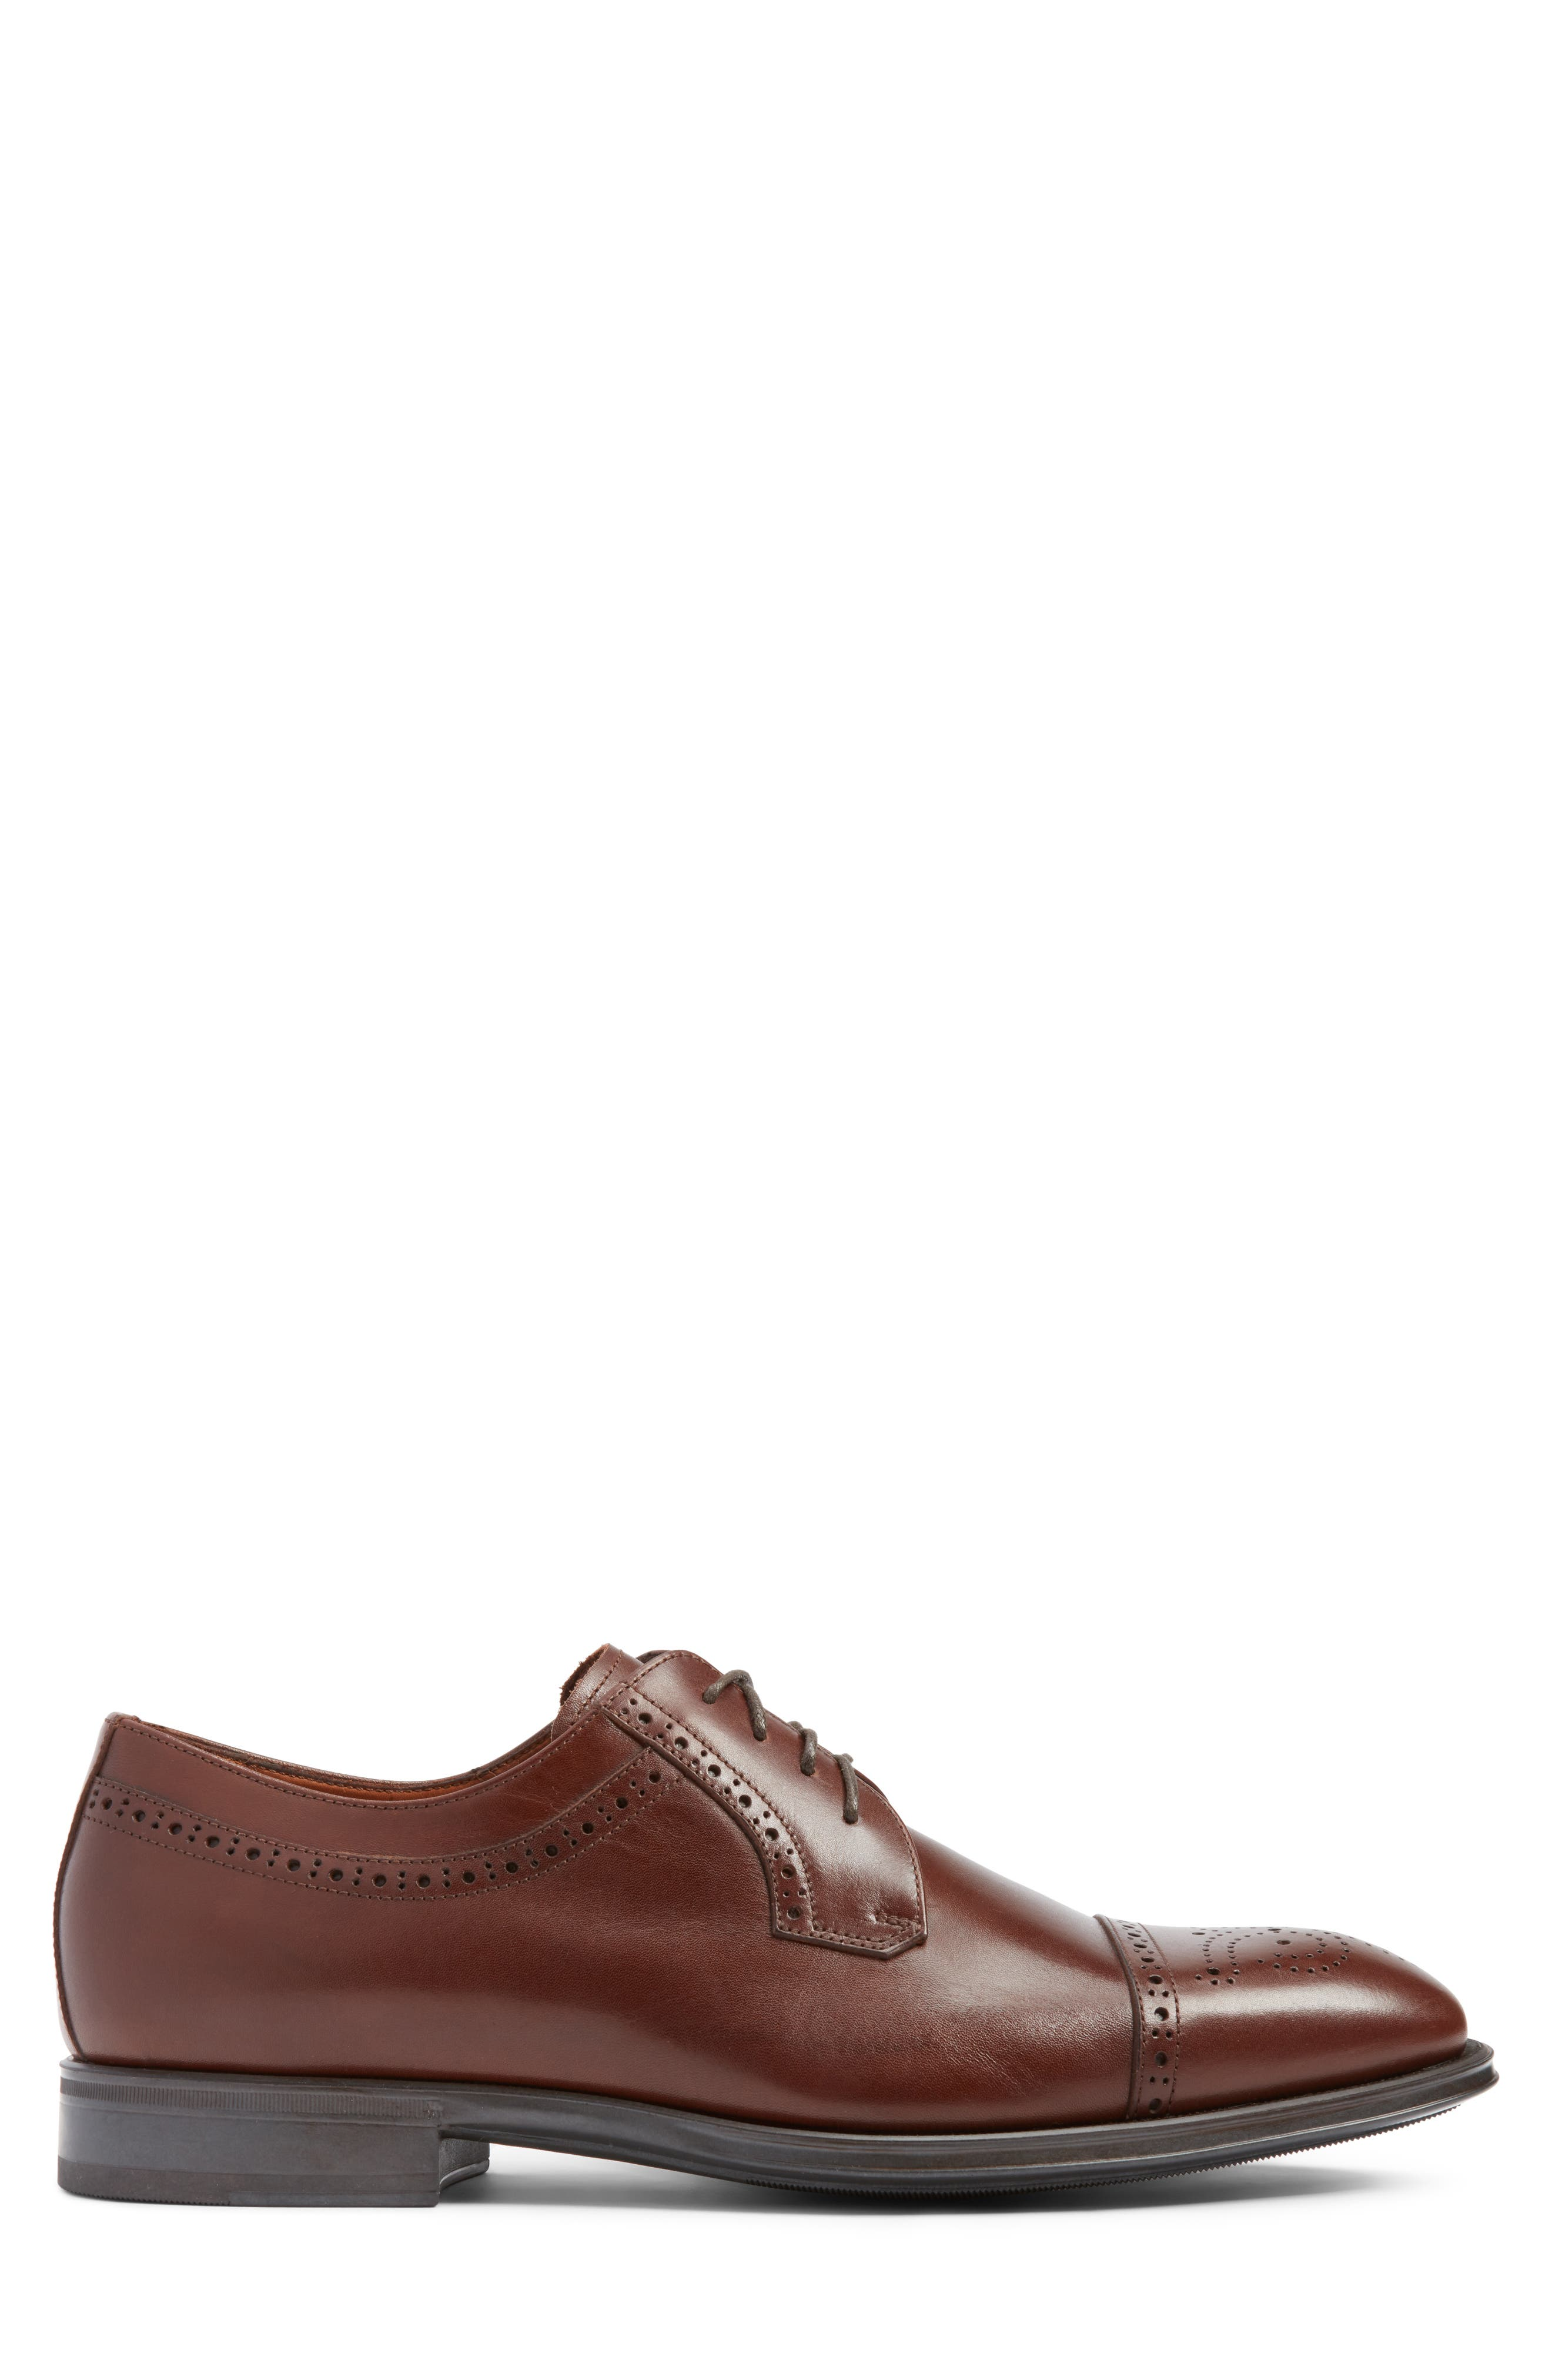 Duke Medallion Toe Derby,                             Alternate thumbnail 3, color,                             Burnished Cognac Leather